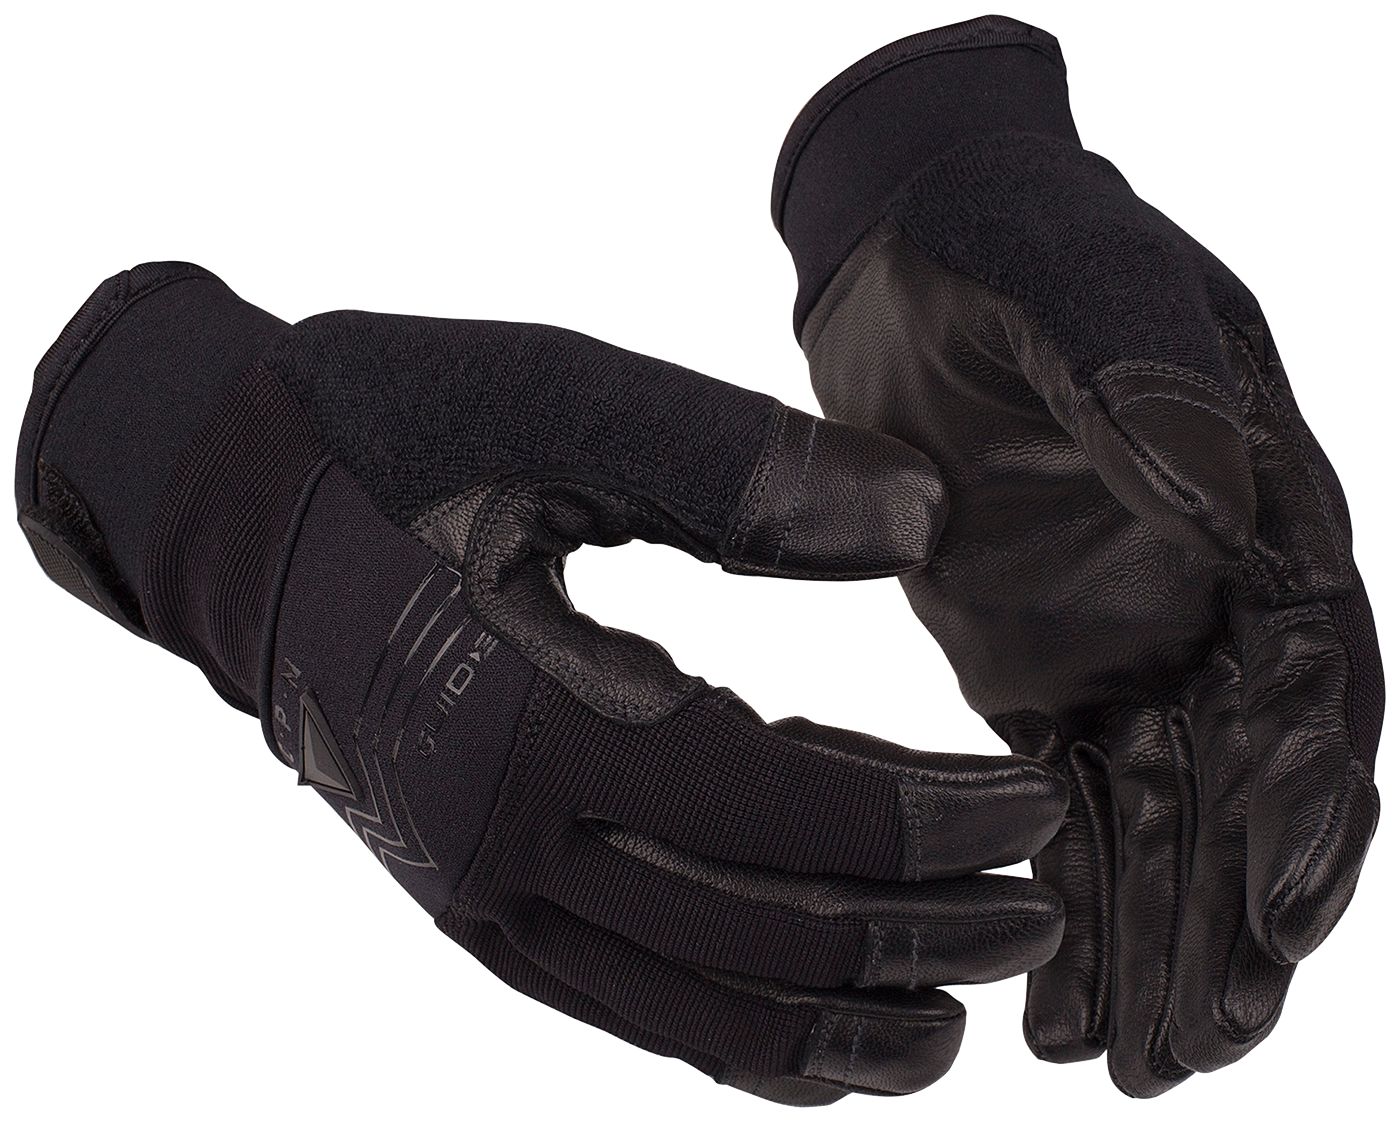 Needle Protection Glove GUIDE 6203 CPN